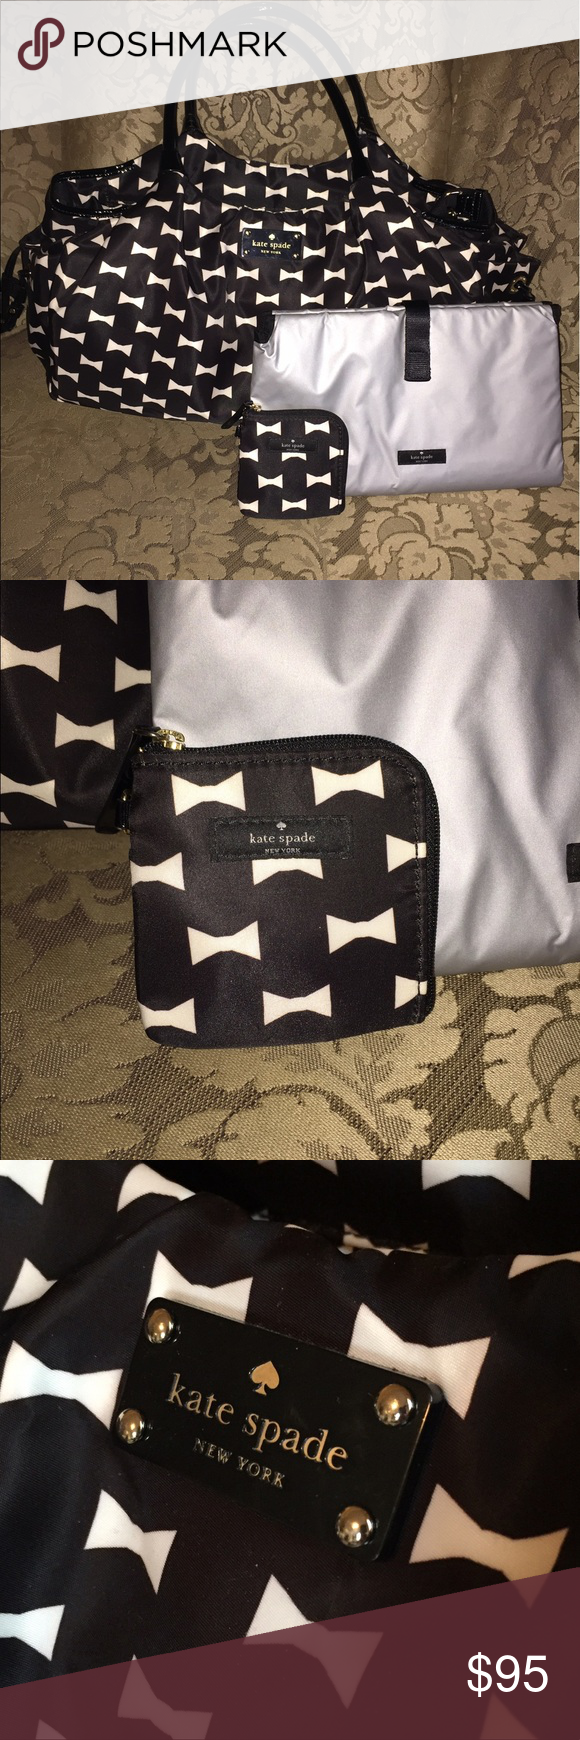 96fe1dd0ff3 KATE SPADE Stevie Diaper Bag Adorable bow tie print from Kate spade ...